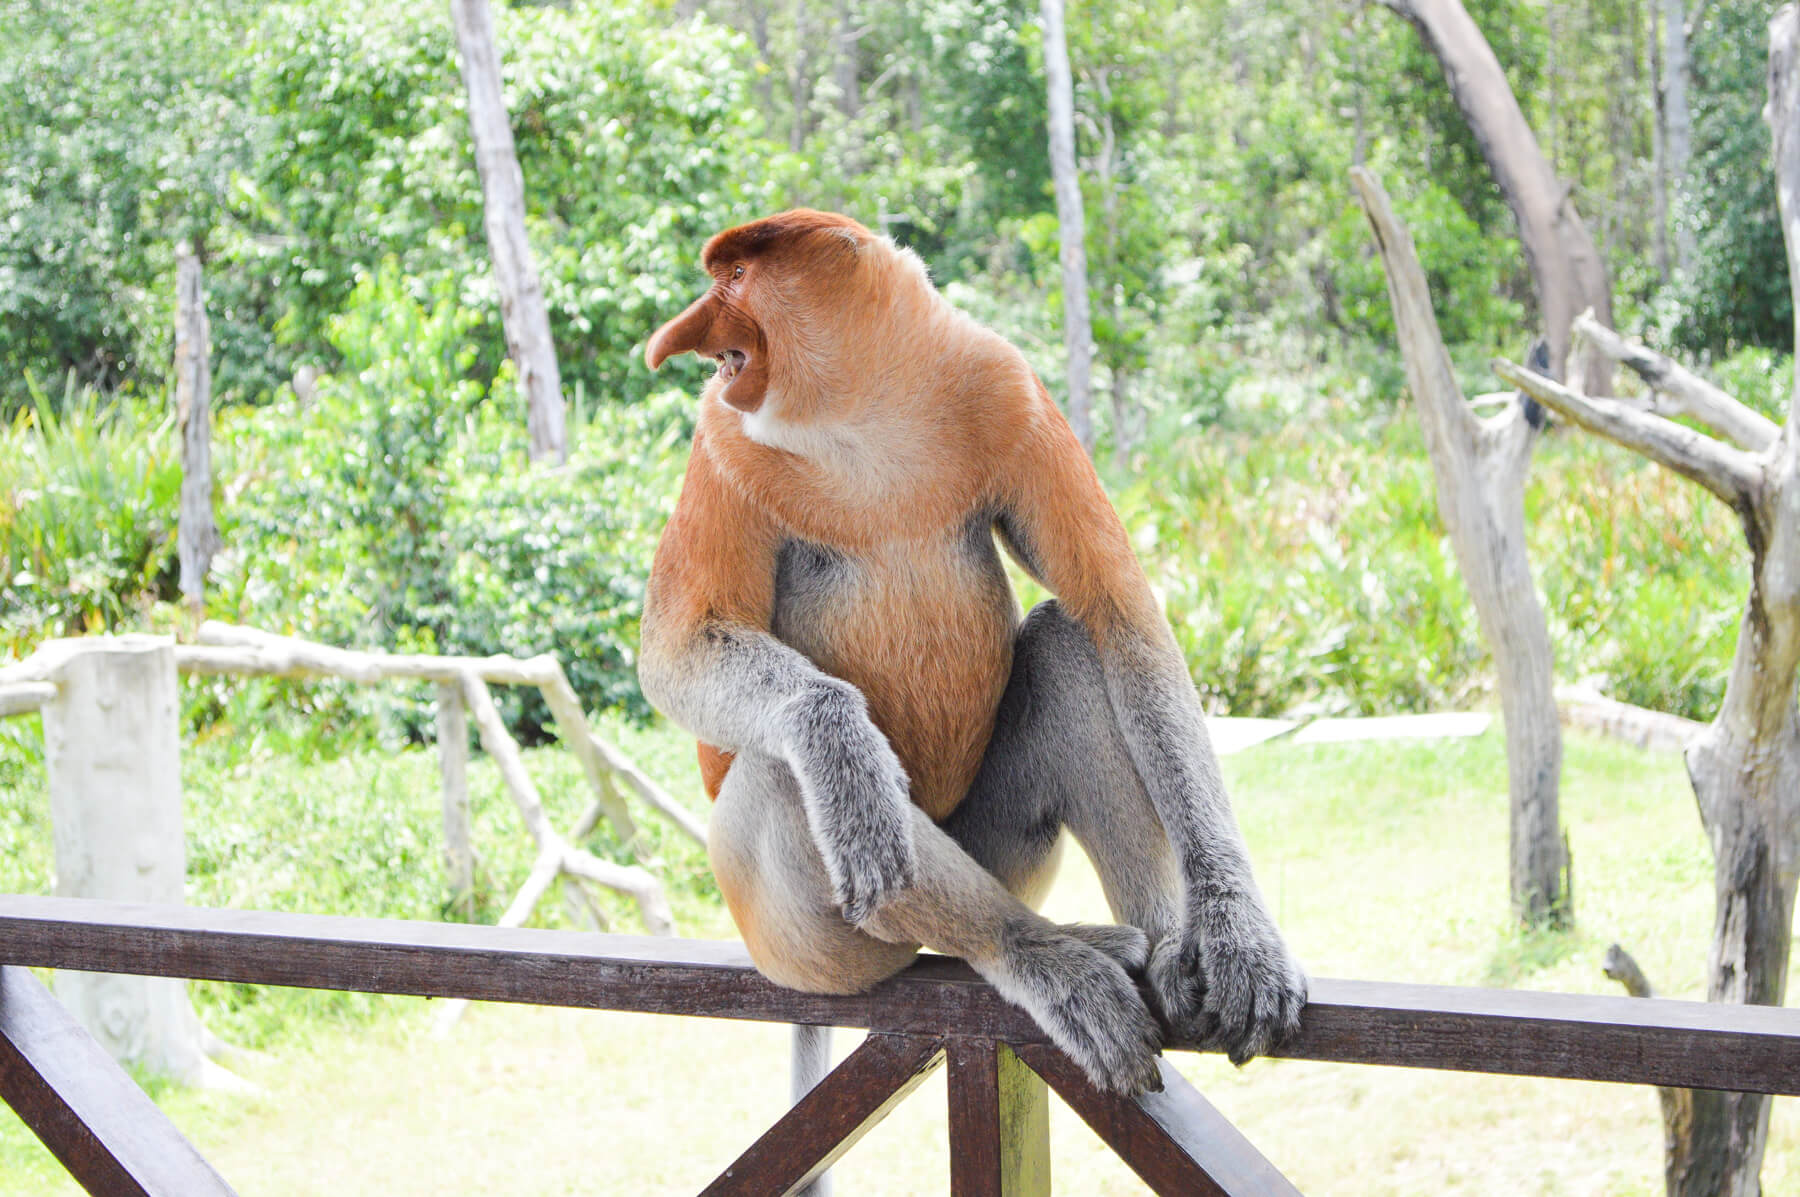 An angry proboscis monkey at the Proboscis Monkey Sanctuary